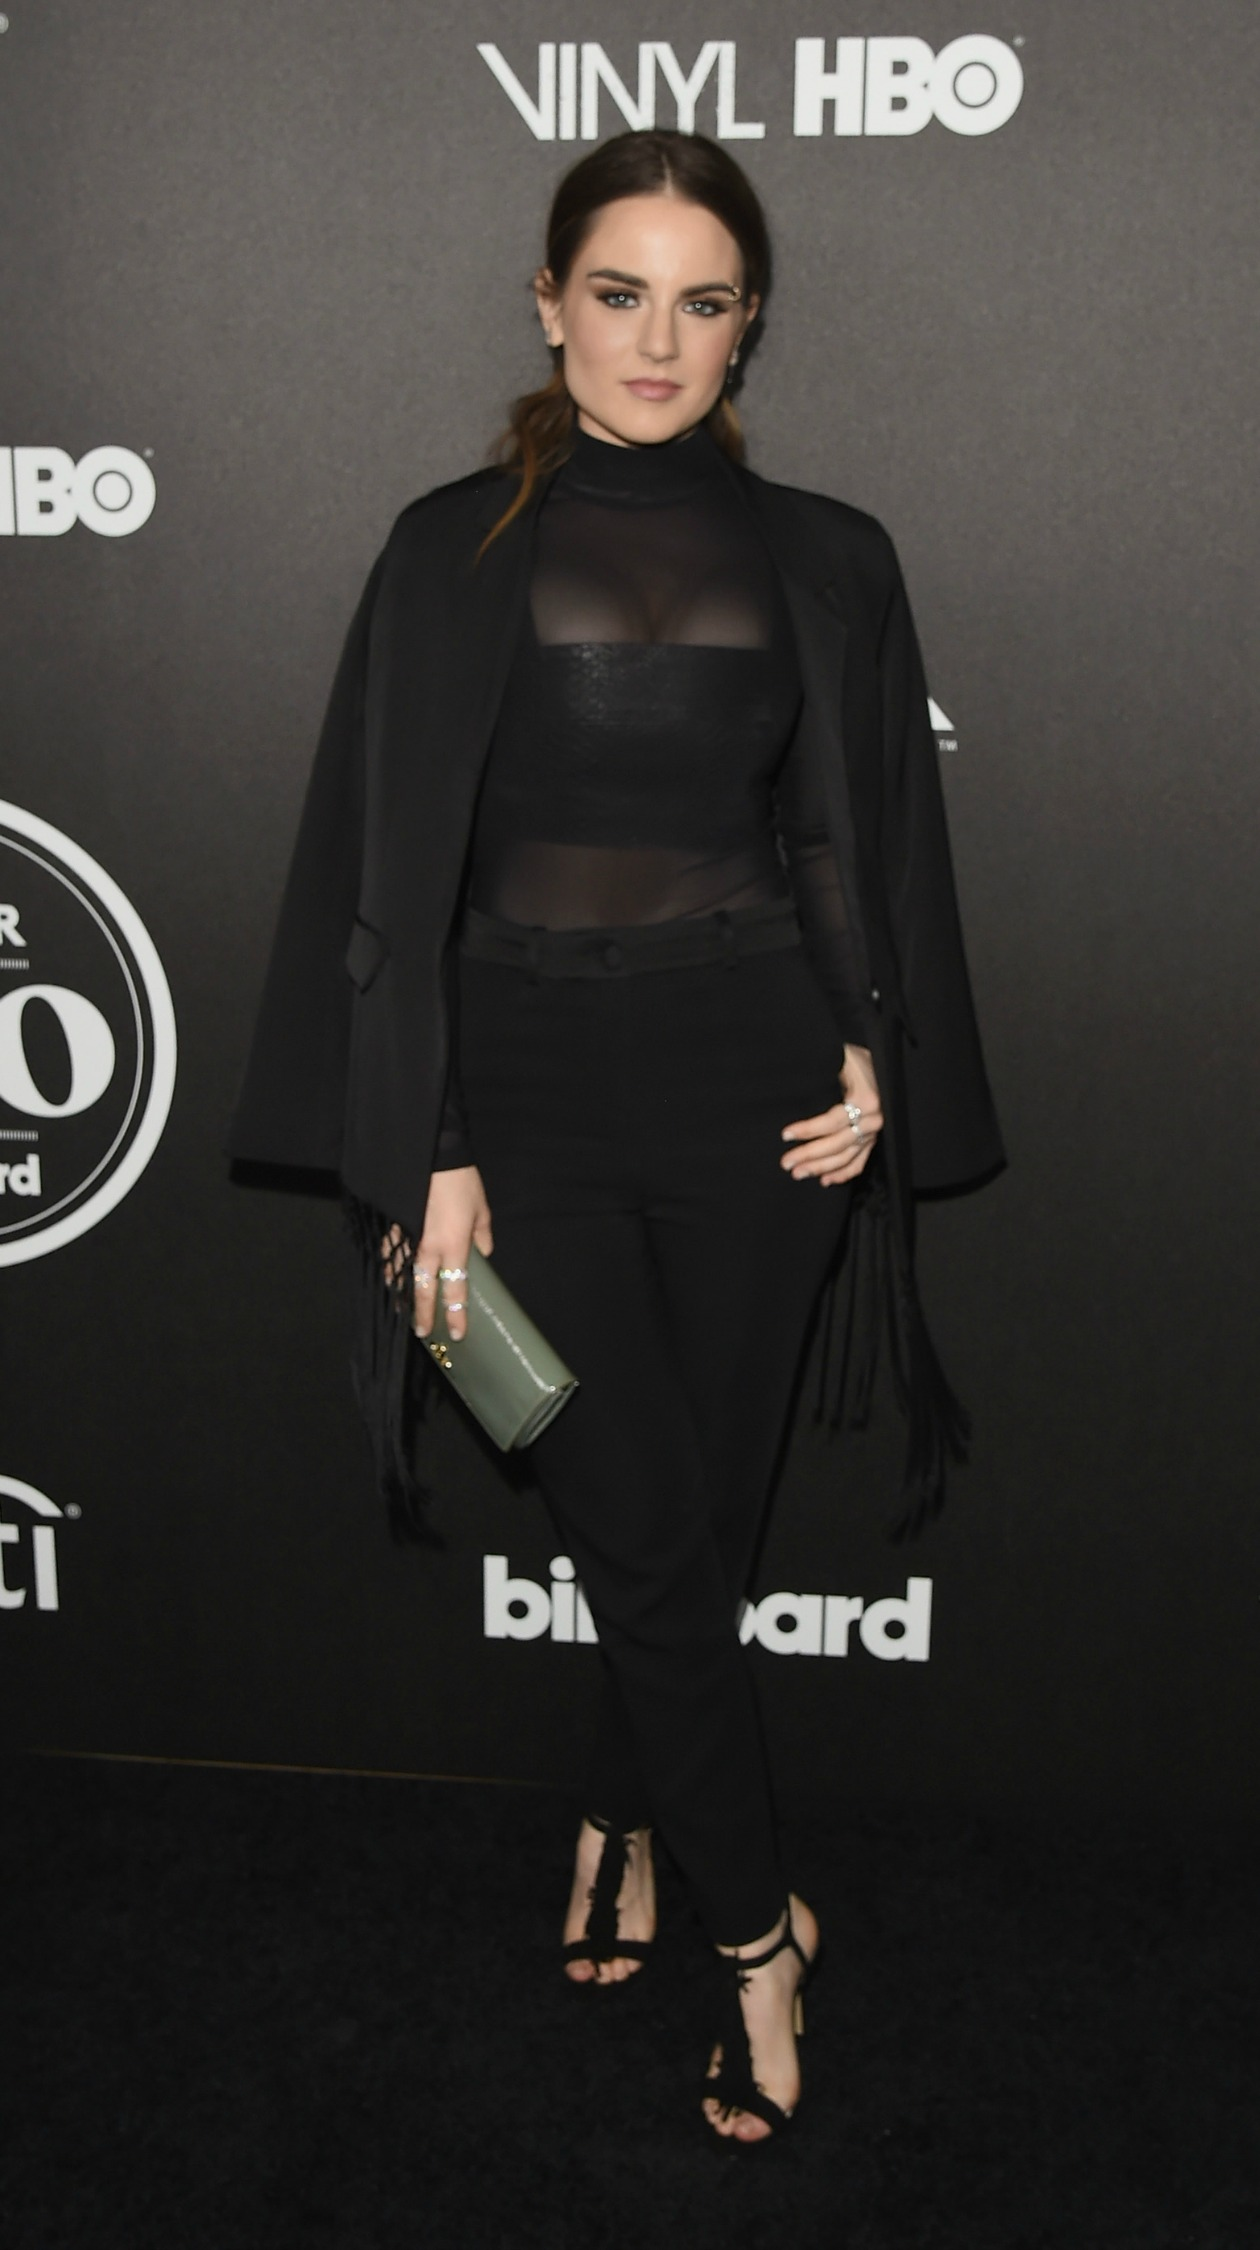 JoJo, Billboard Power 100, Grammy Awards